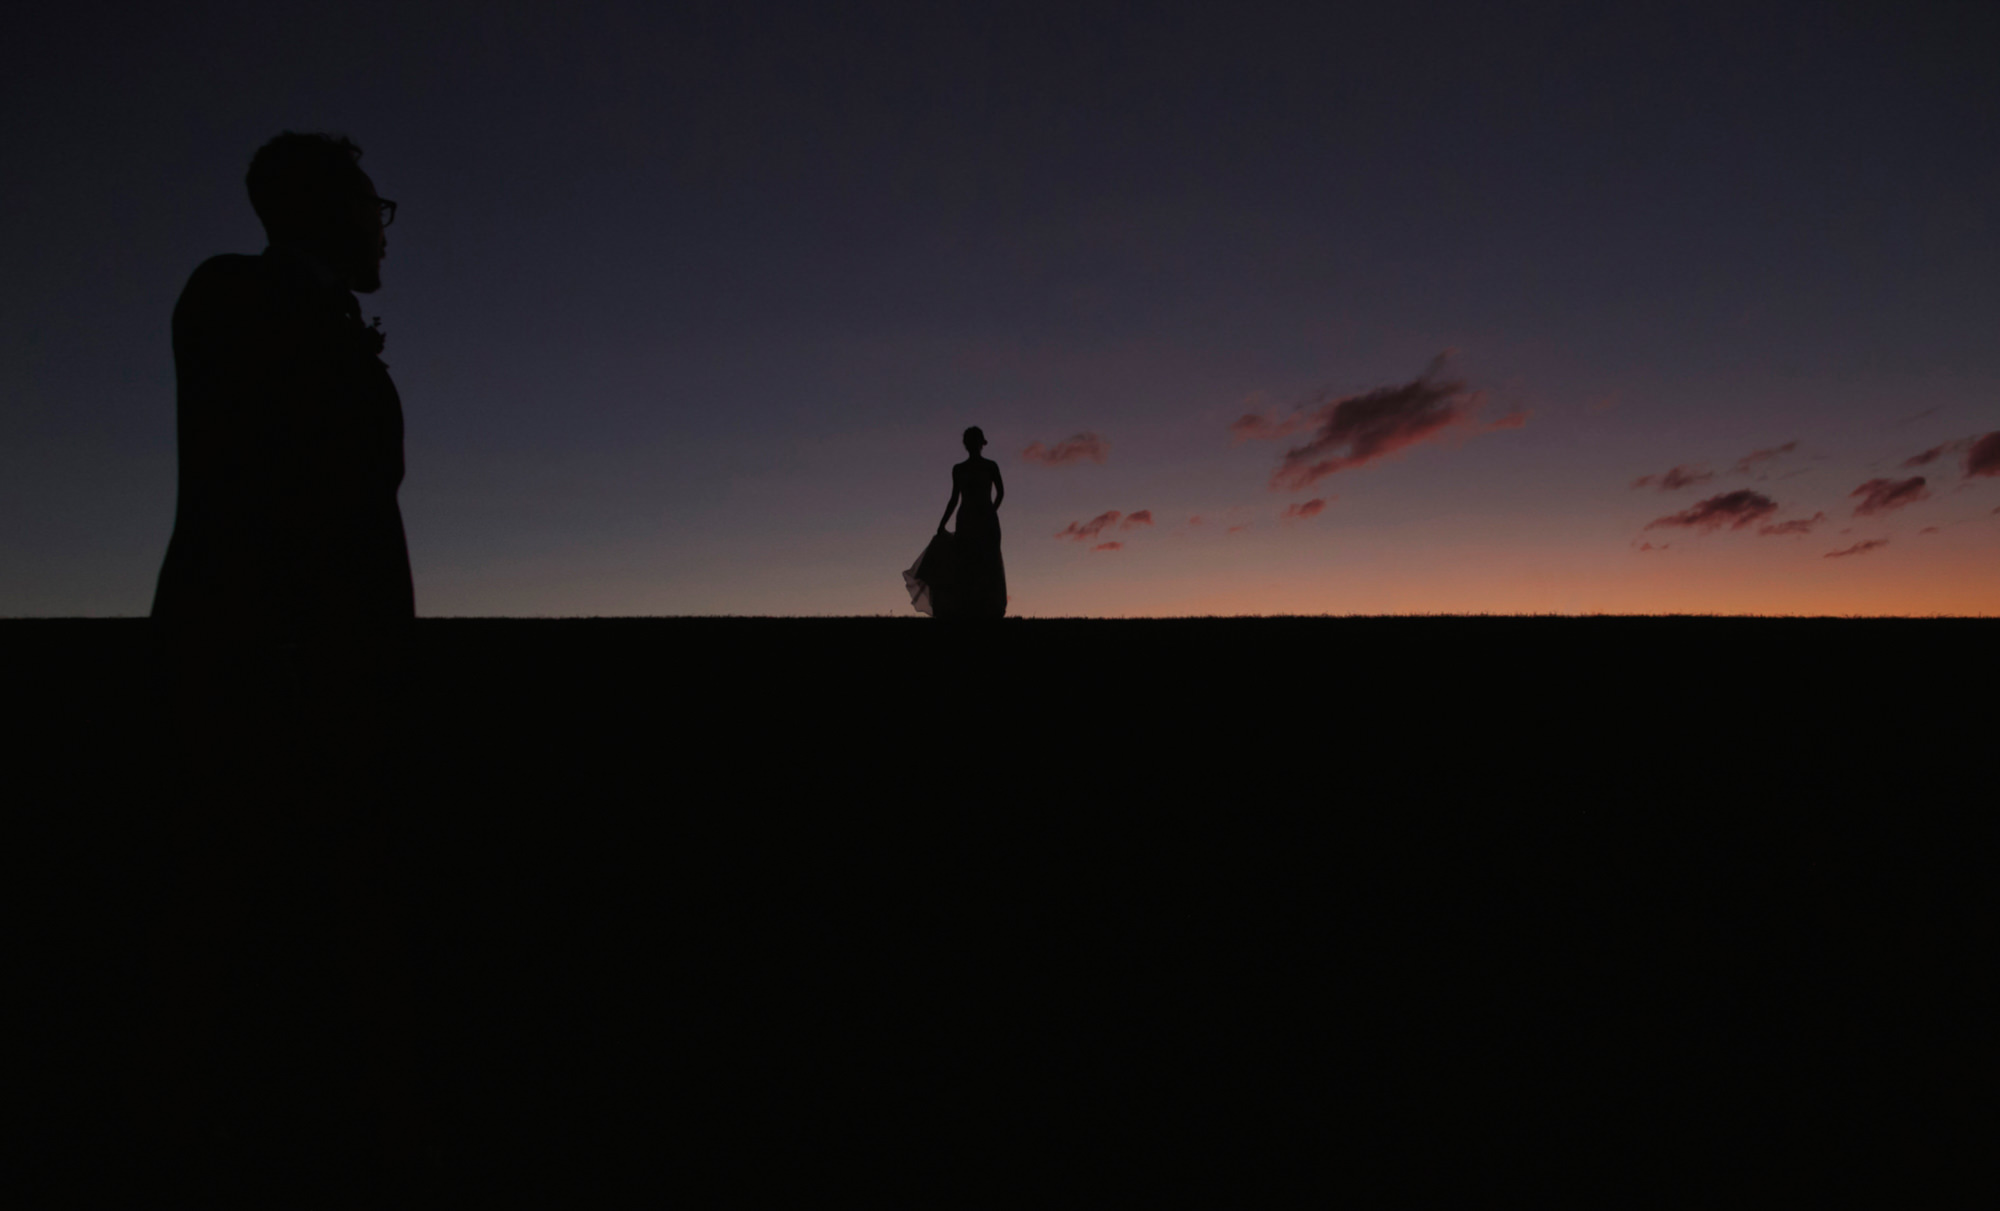 Silhouette of bride in the distance with groom in foreground, by Dan O' Day